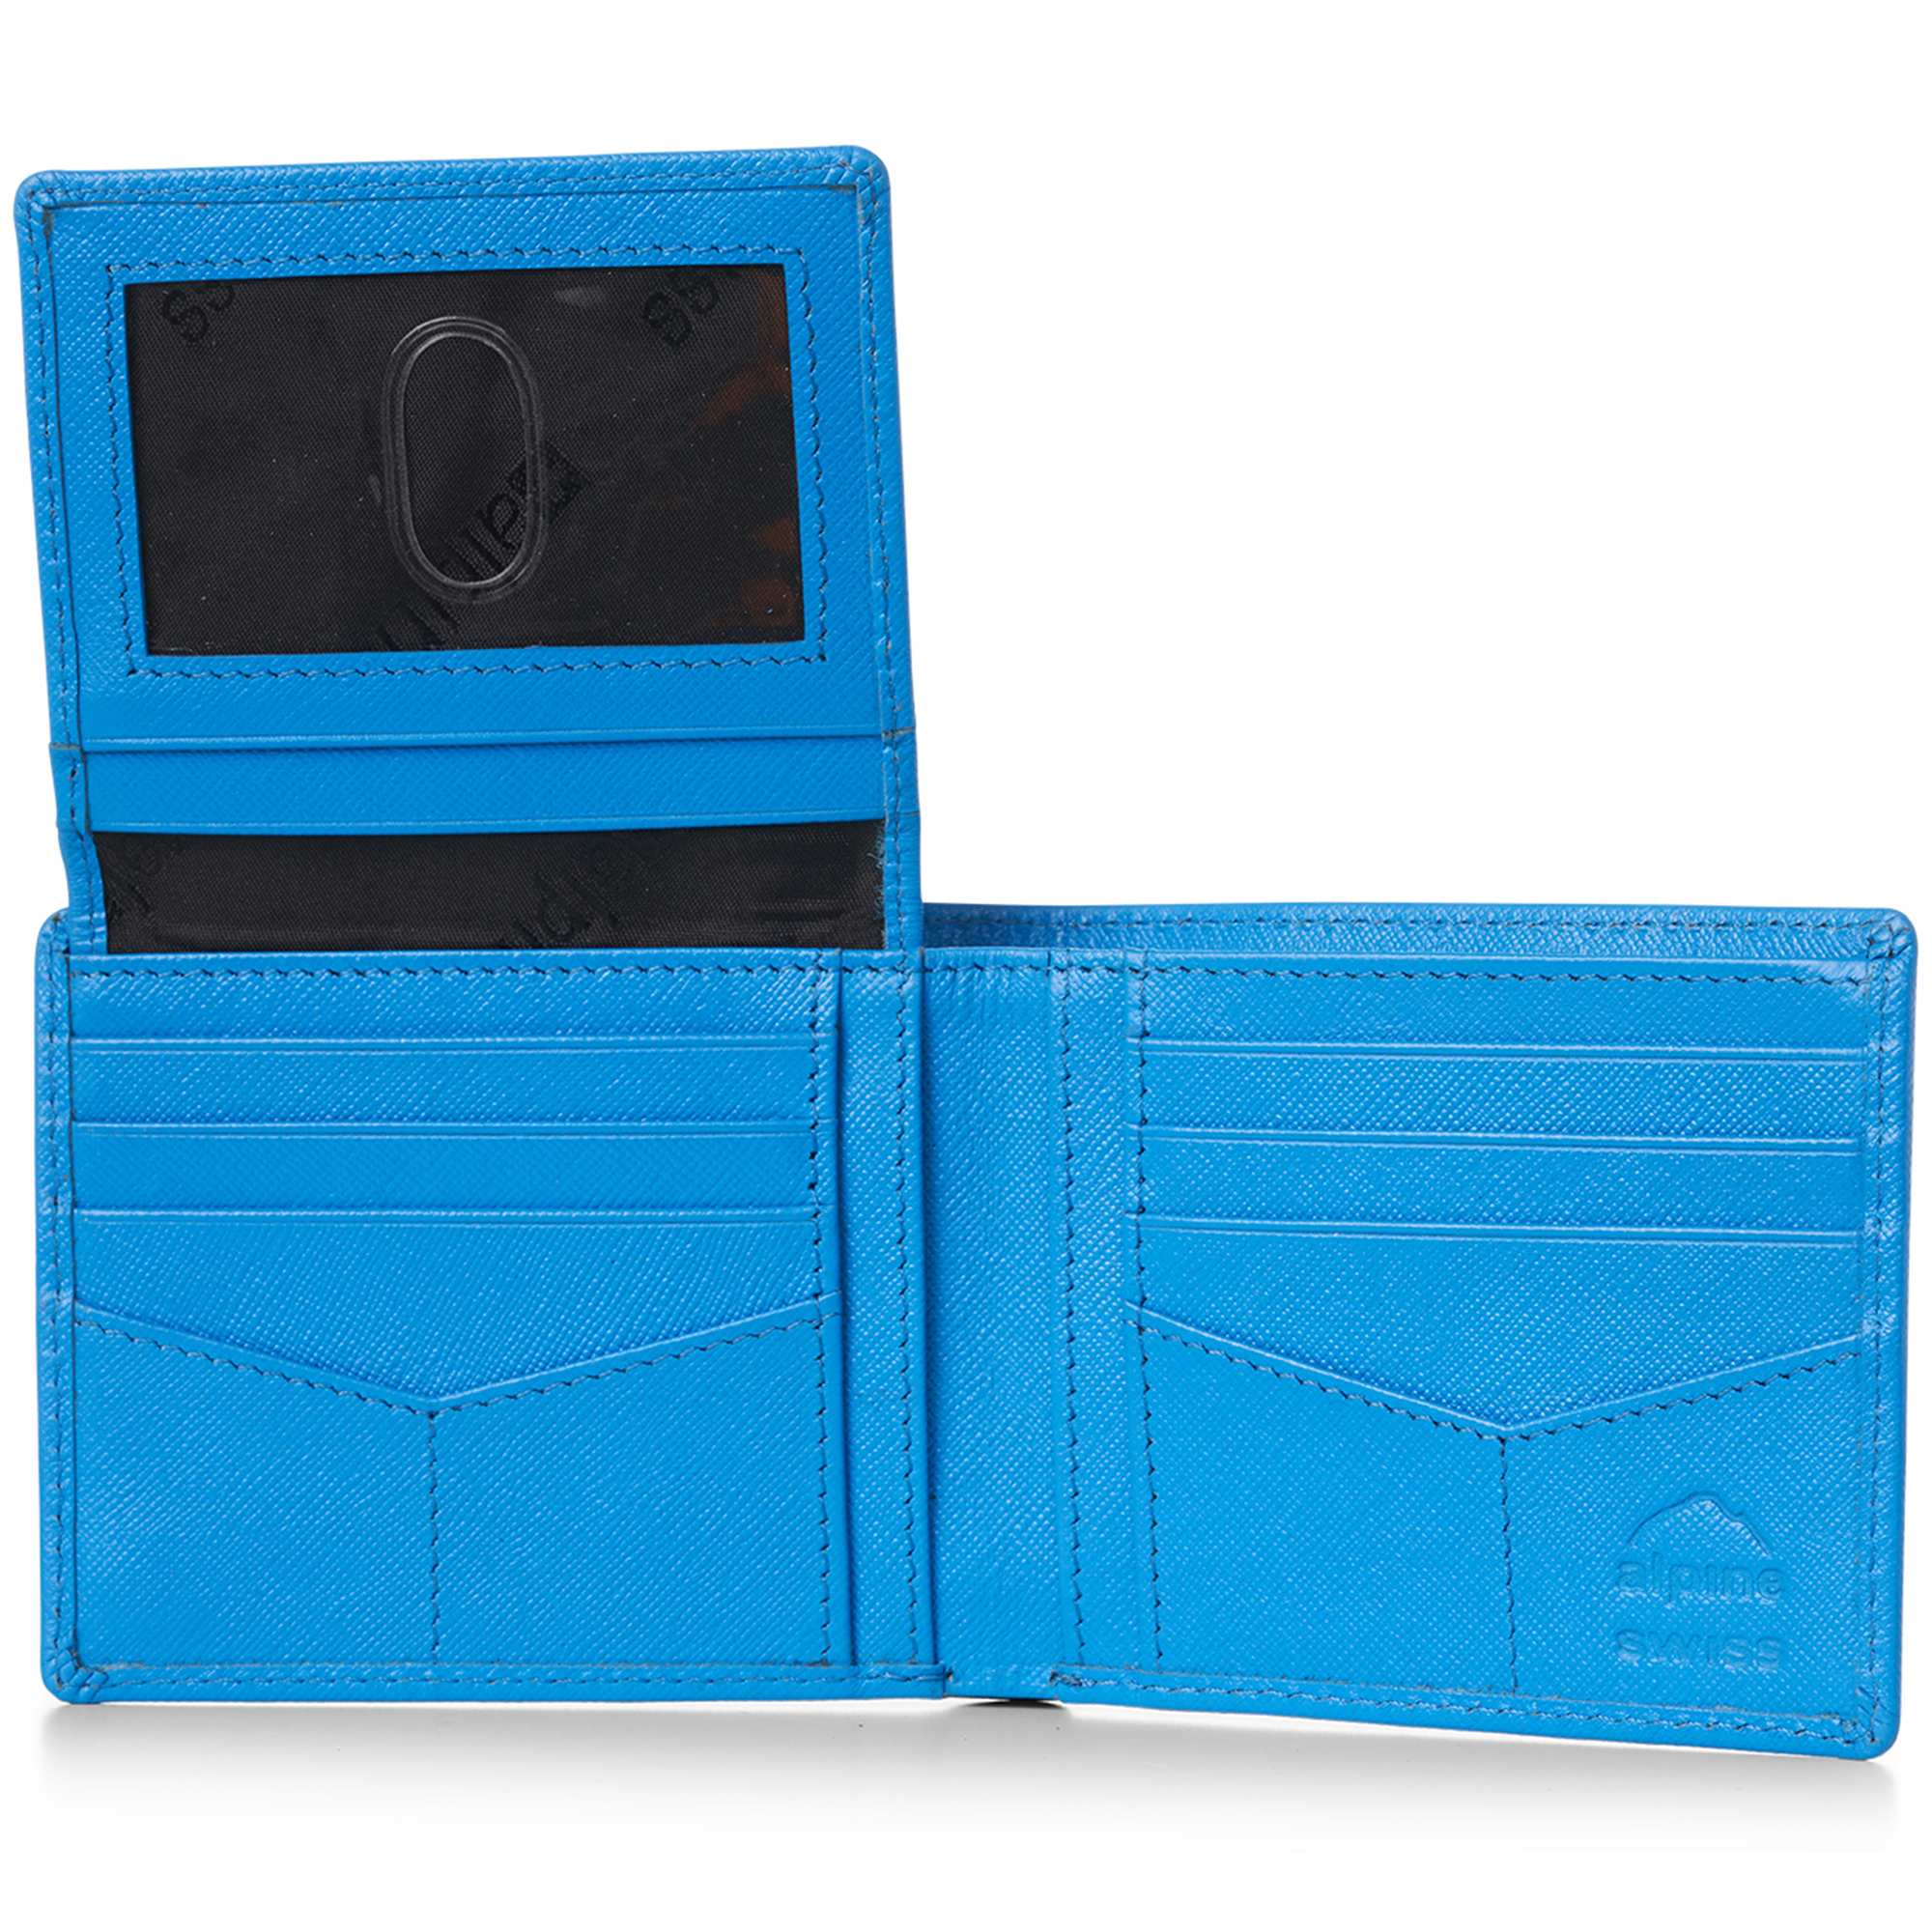 miniature 33 - Alpine-Swiss-RFID-Mens-Wallet-Deluxe-Capacity-Passcase-Bifold-Two-Bill-Sections